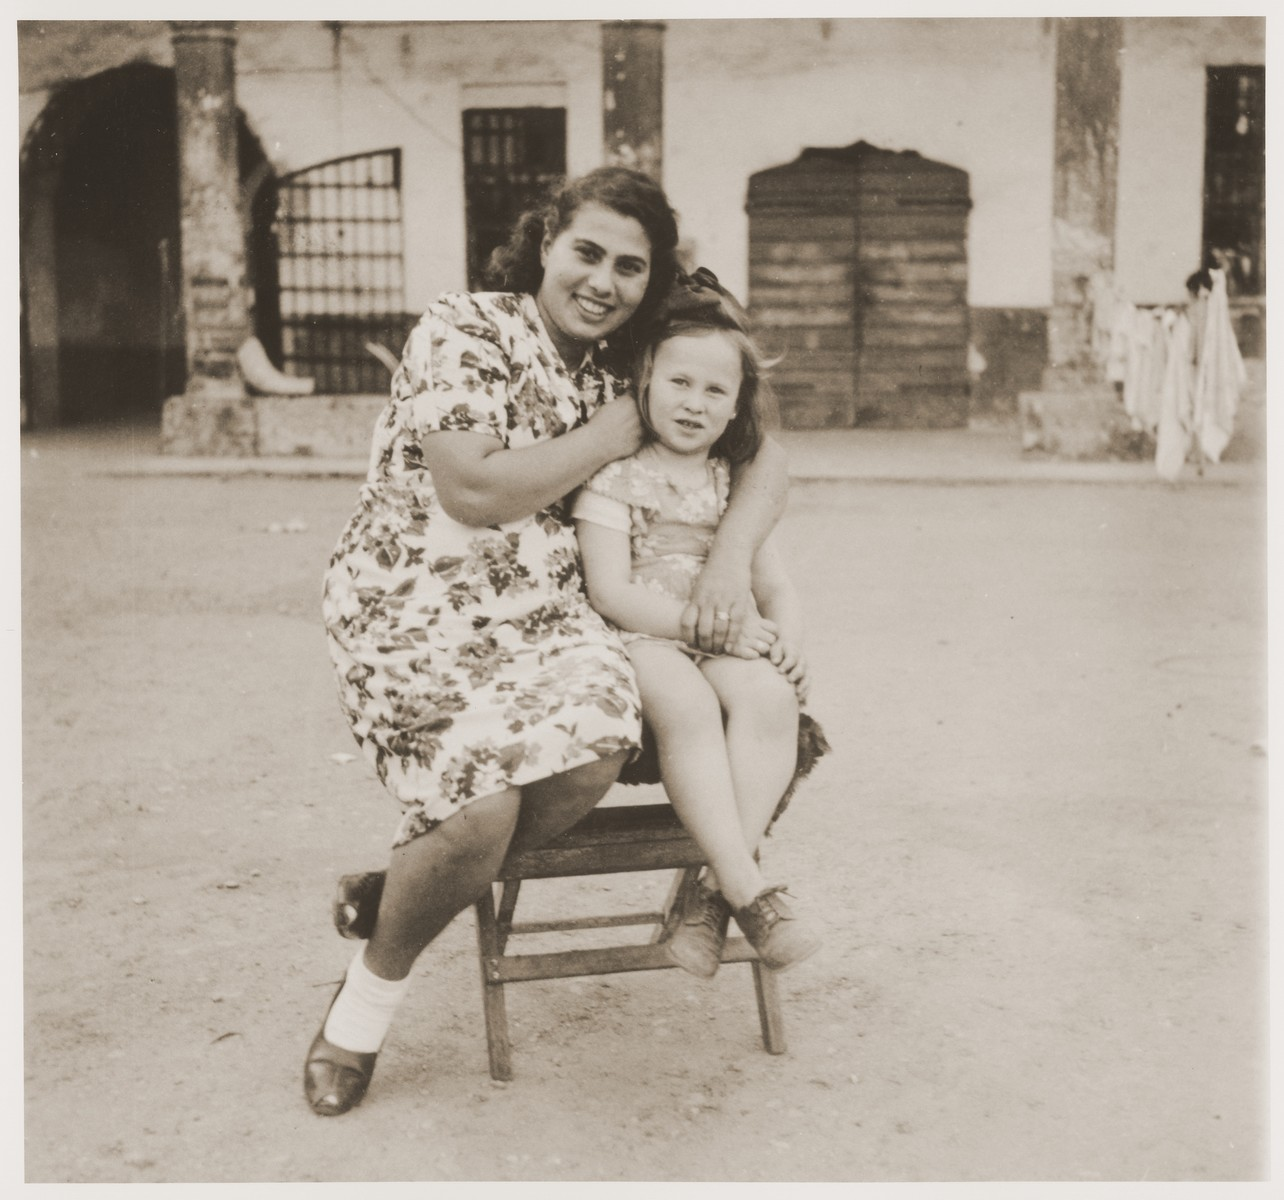 A Jewish DP child poses with a young woman in the Cremona DP camp.  Pictured is Masha Leikach and a woman named Hinda.